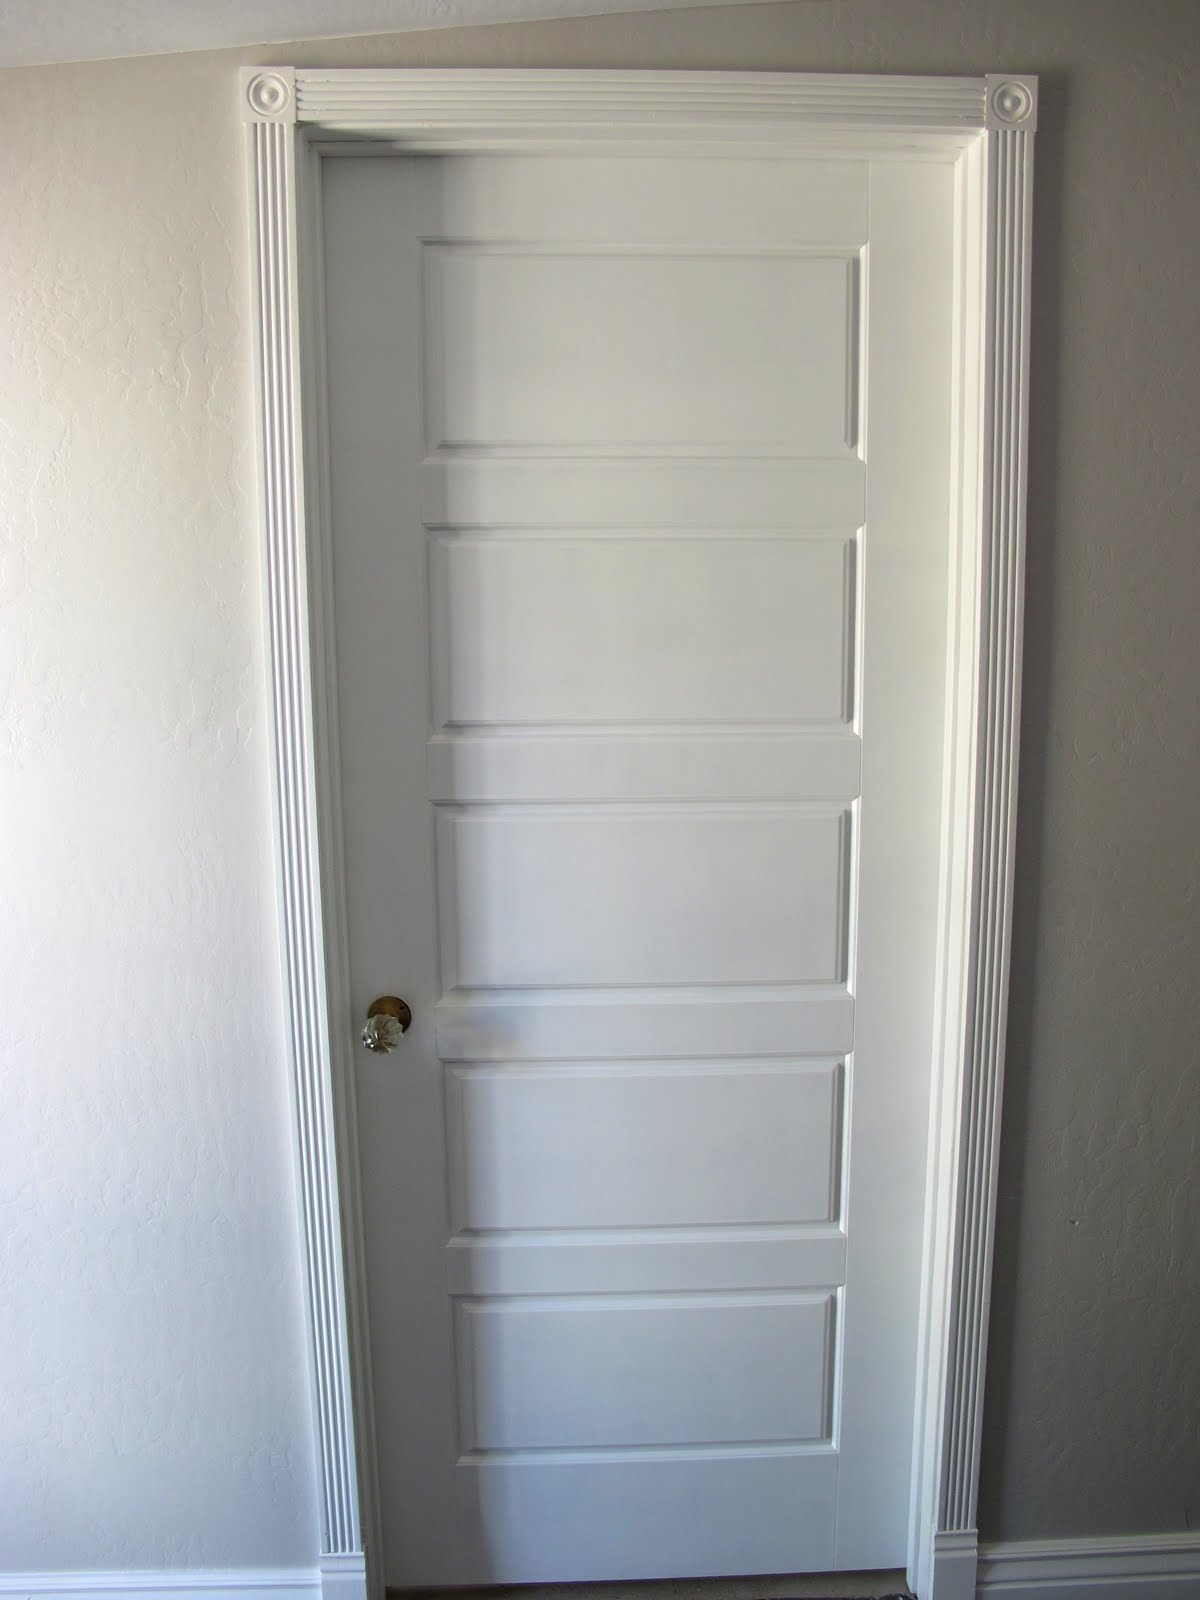 Replacement of hinges for interior doors is a work for a master